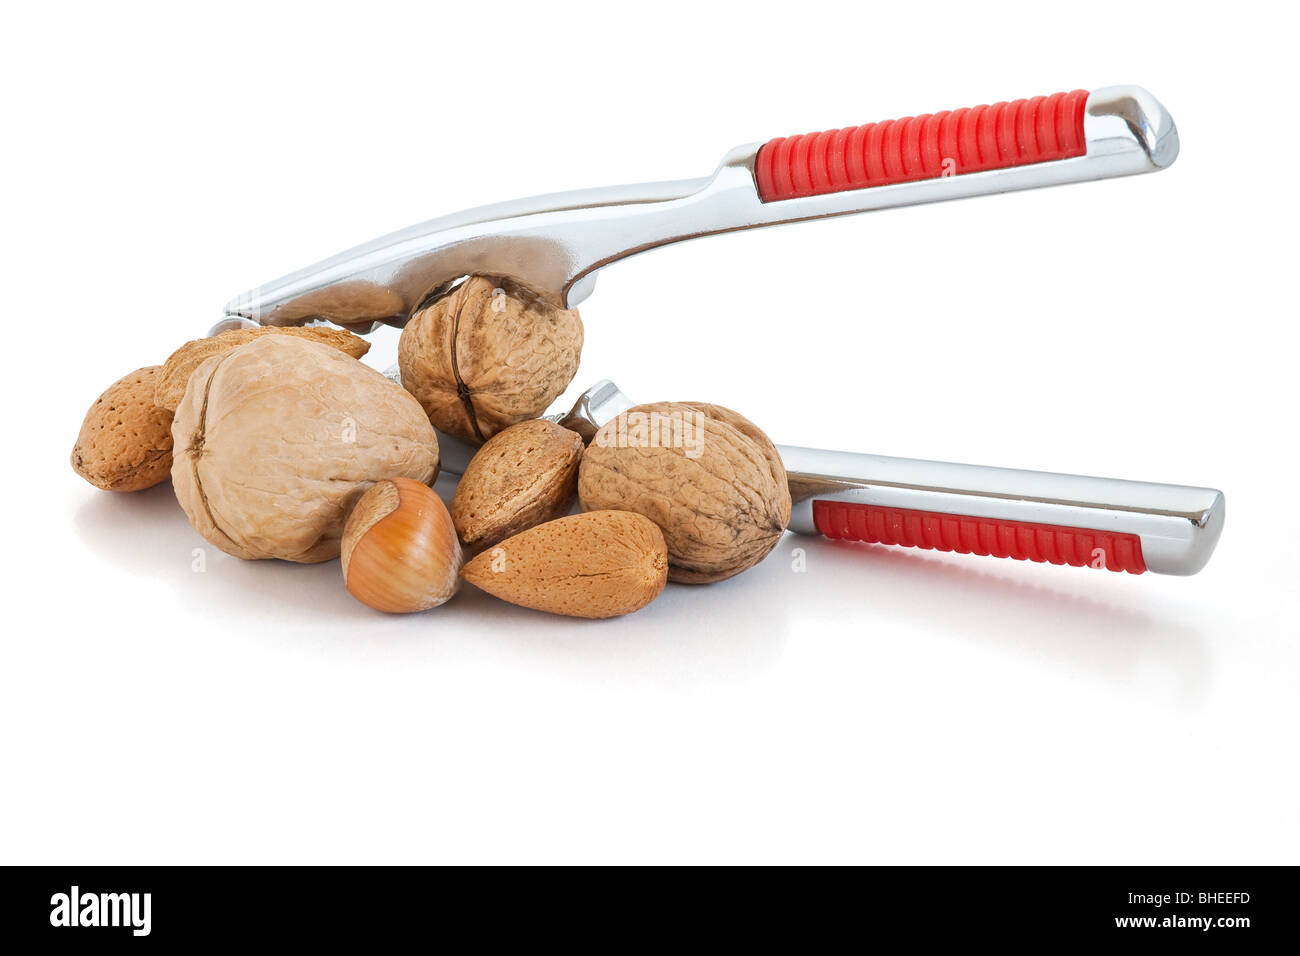 detail of nutcracker with almonds and nuts isolated on white background - Stock Image